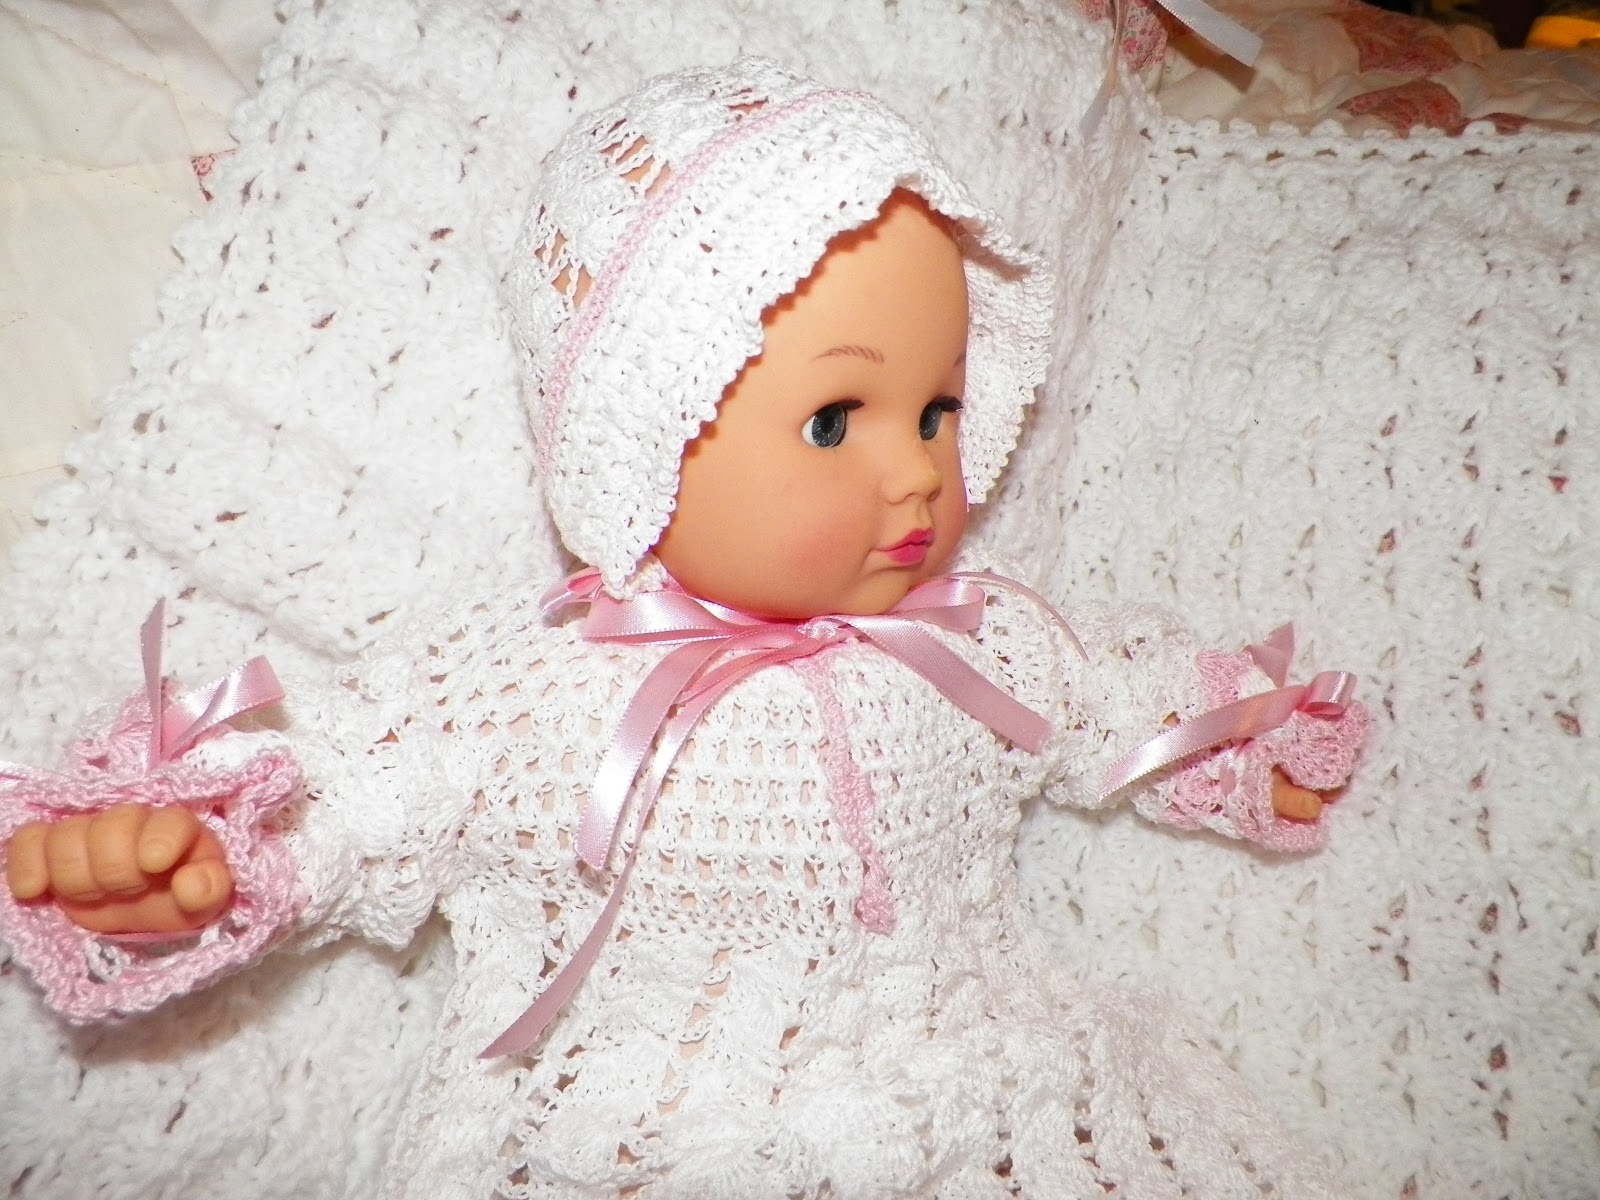 New crocheted BABY items!